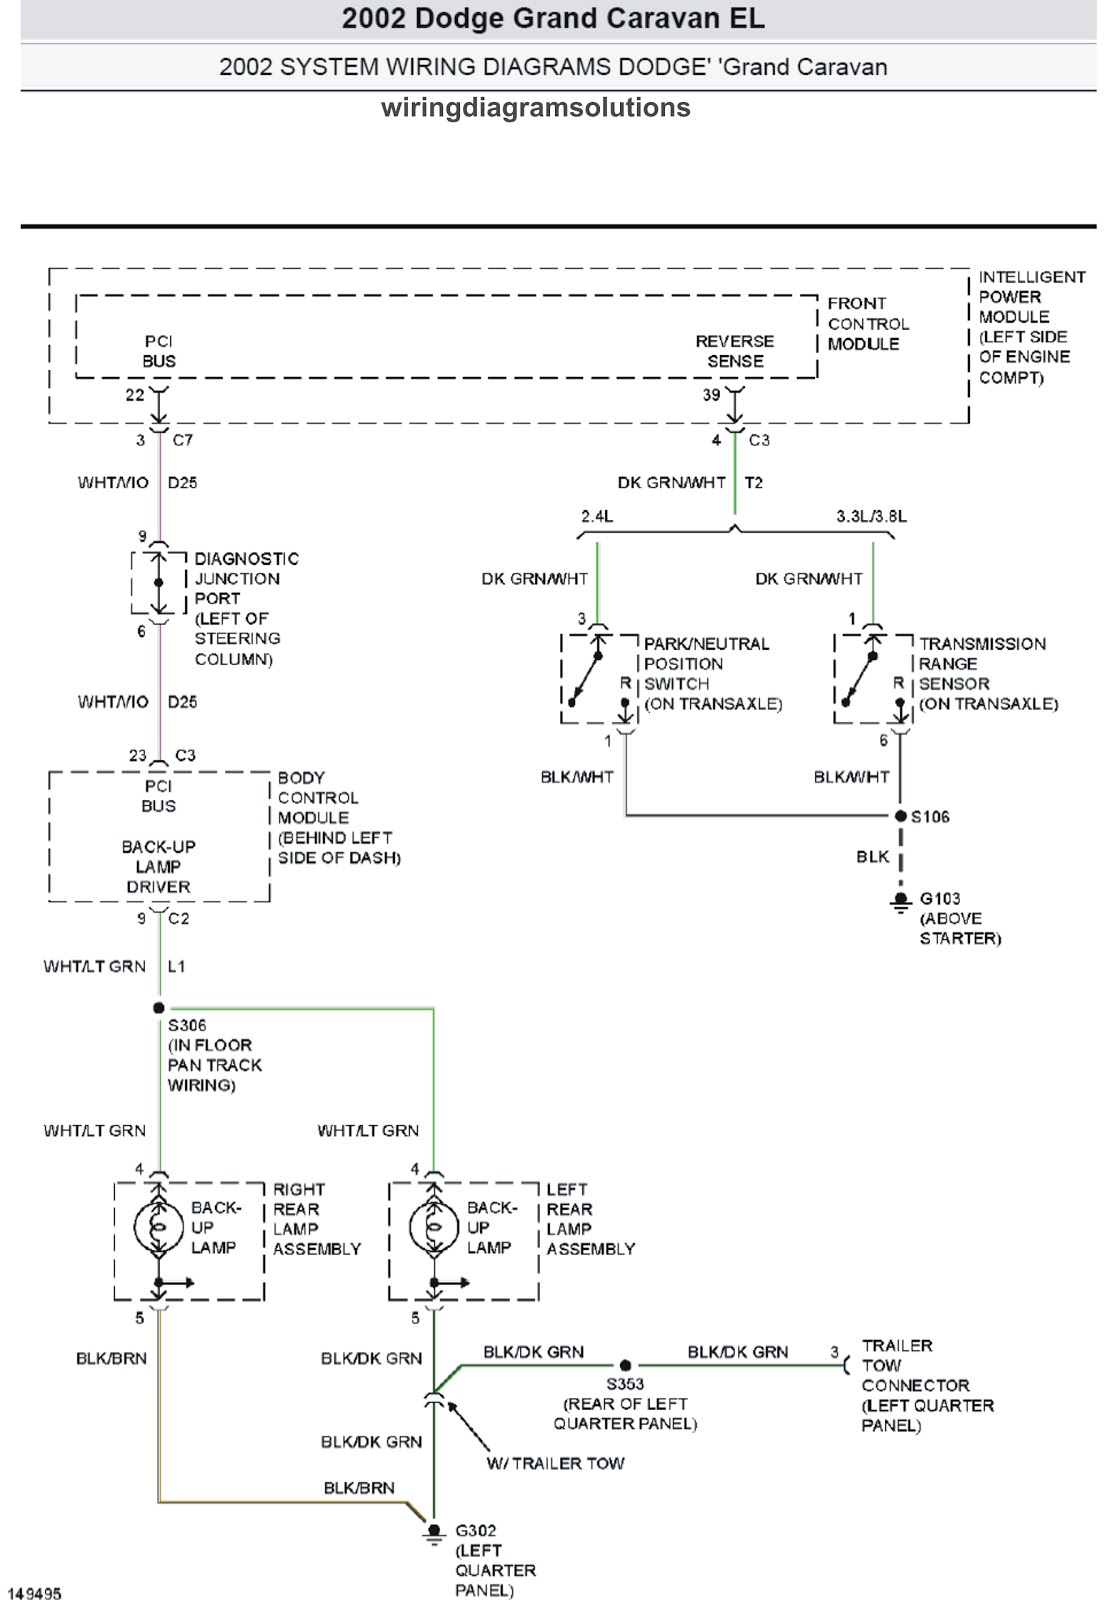 small resolution of may 2011 schematic wiring diagrams solutions 02 dodge caravan wiring diagram 2003 dodge grand caravan wiring